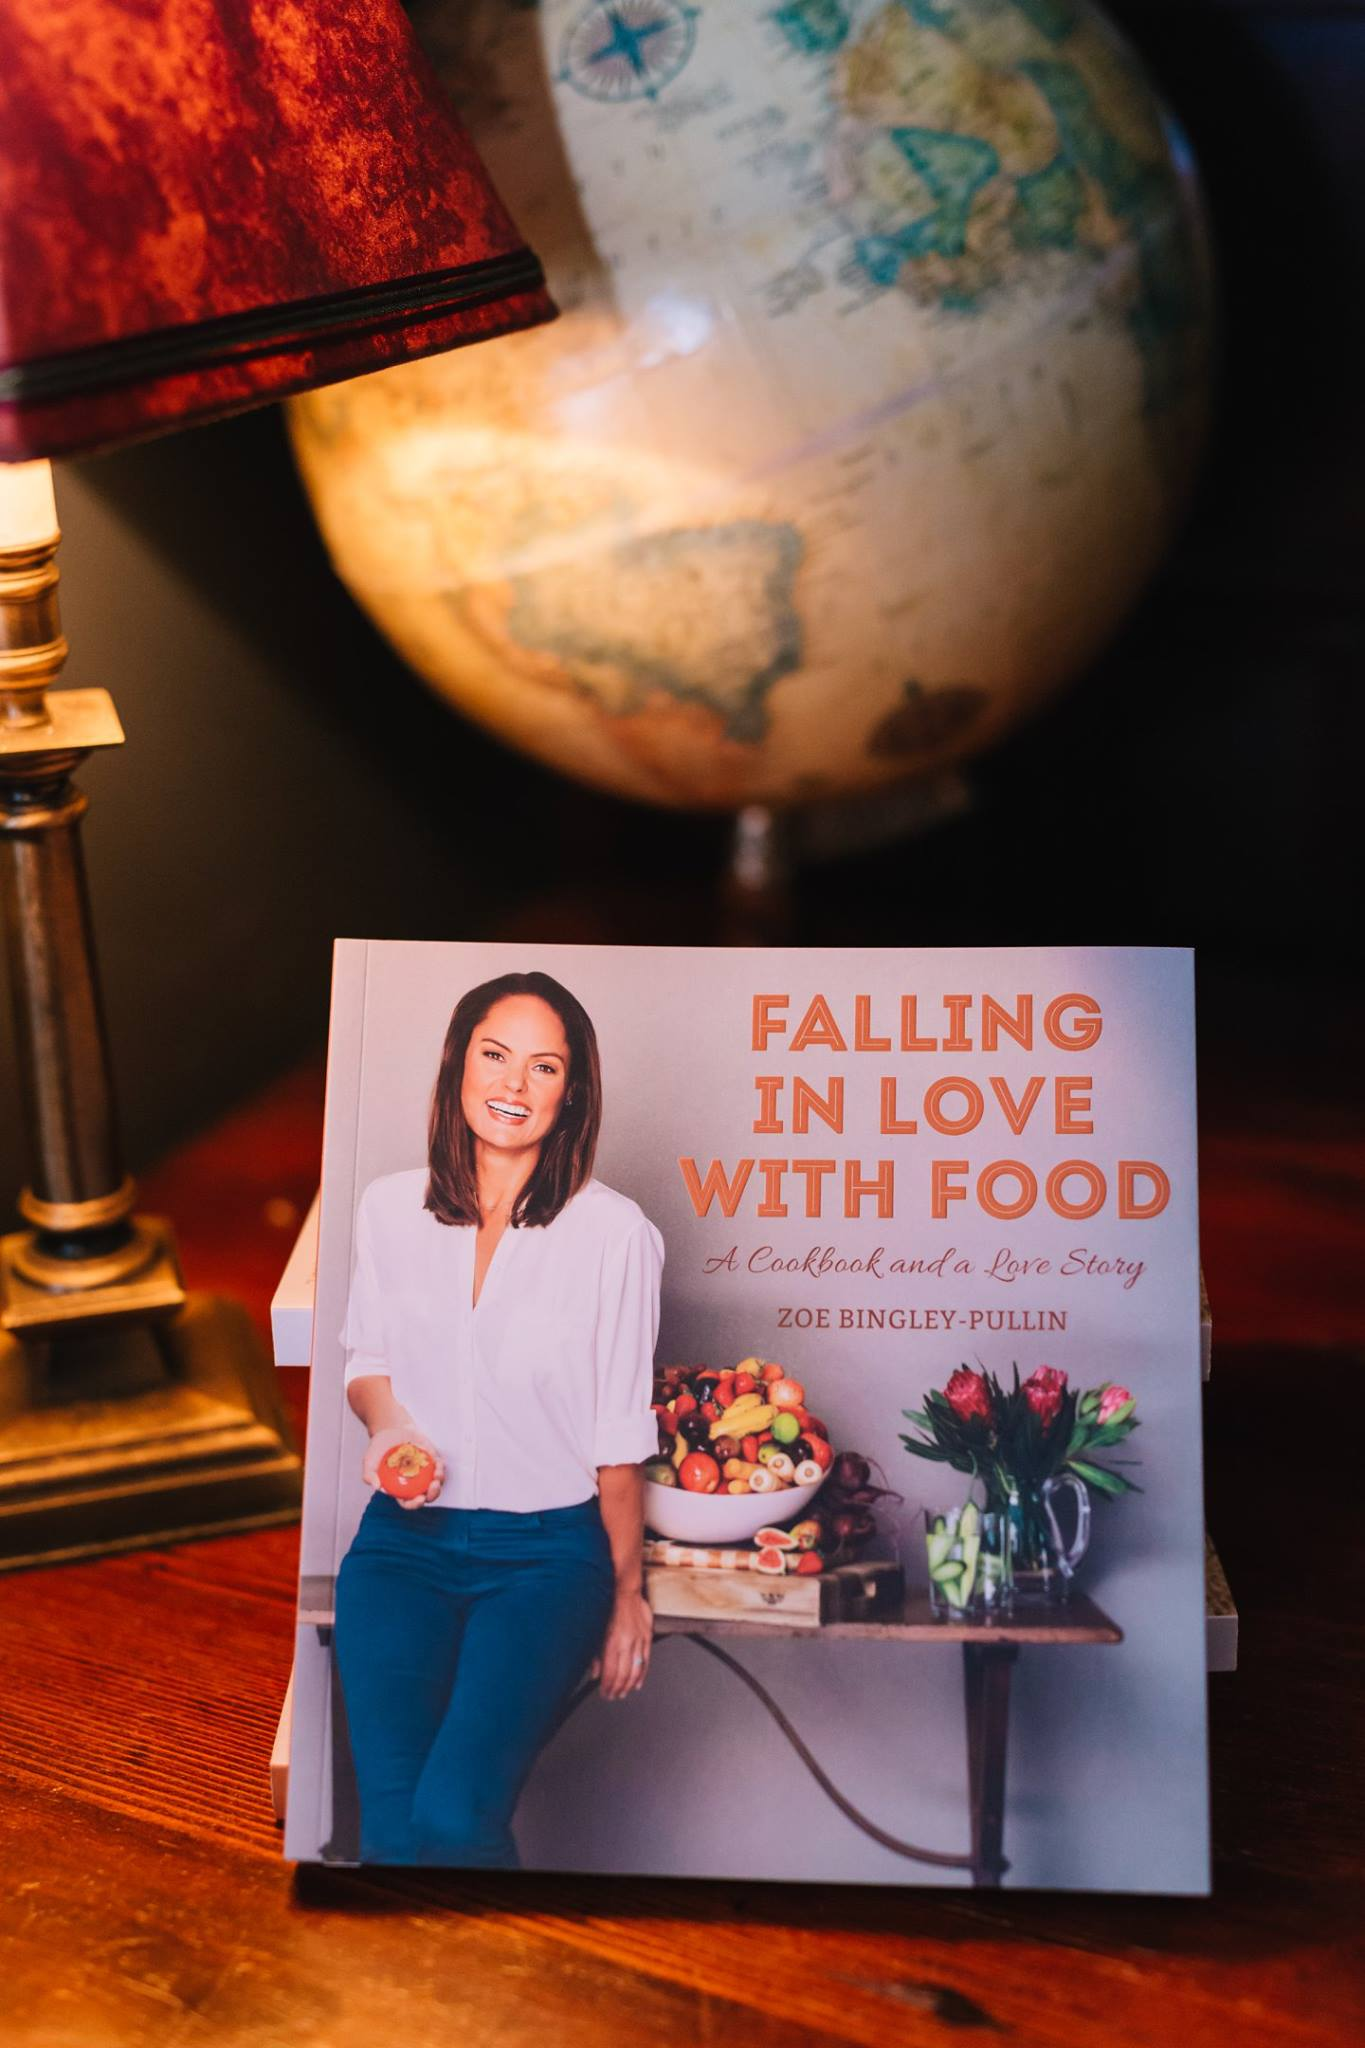 'Falling in Love With Food', written by our Mother's Day mama presenter Zoe Bingley-Pullin, and one of our special giveaways at our special evening talk with Jasmine Mansbridge. It is such a refreshing cook book, encouraging and accessible in this world of food limitations and restrictions.  http://zoebingleypullin.com/